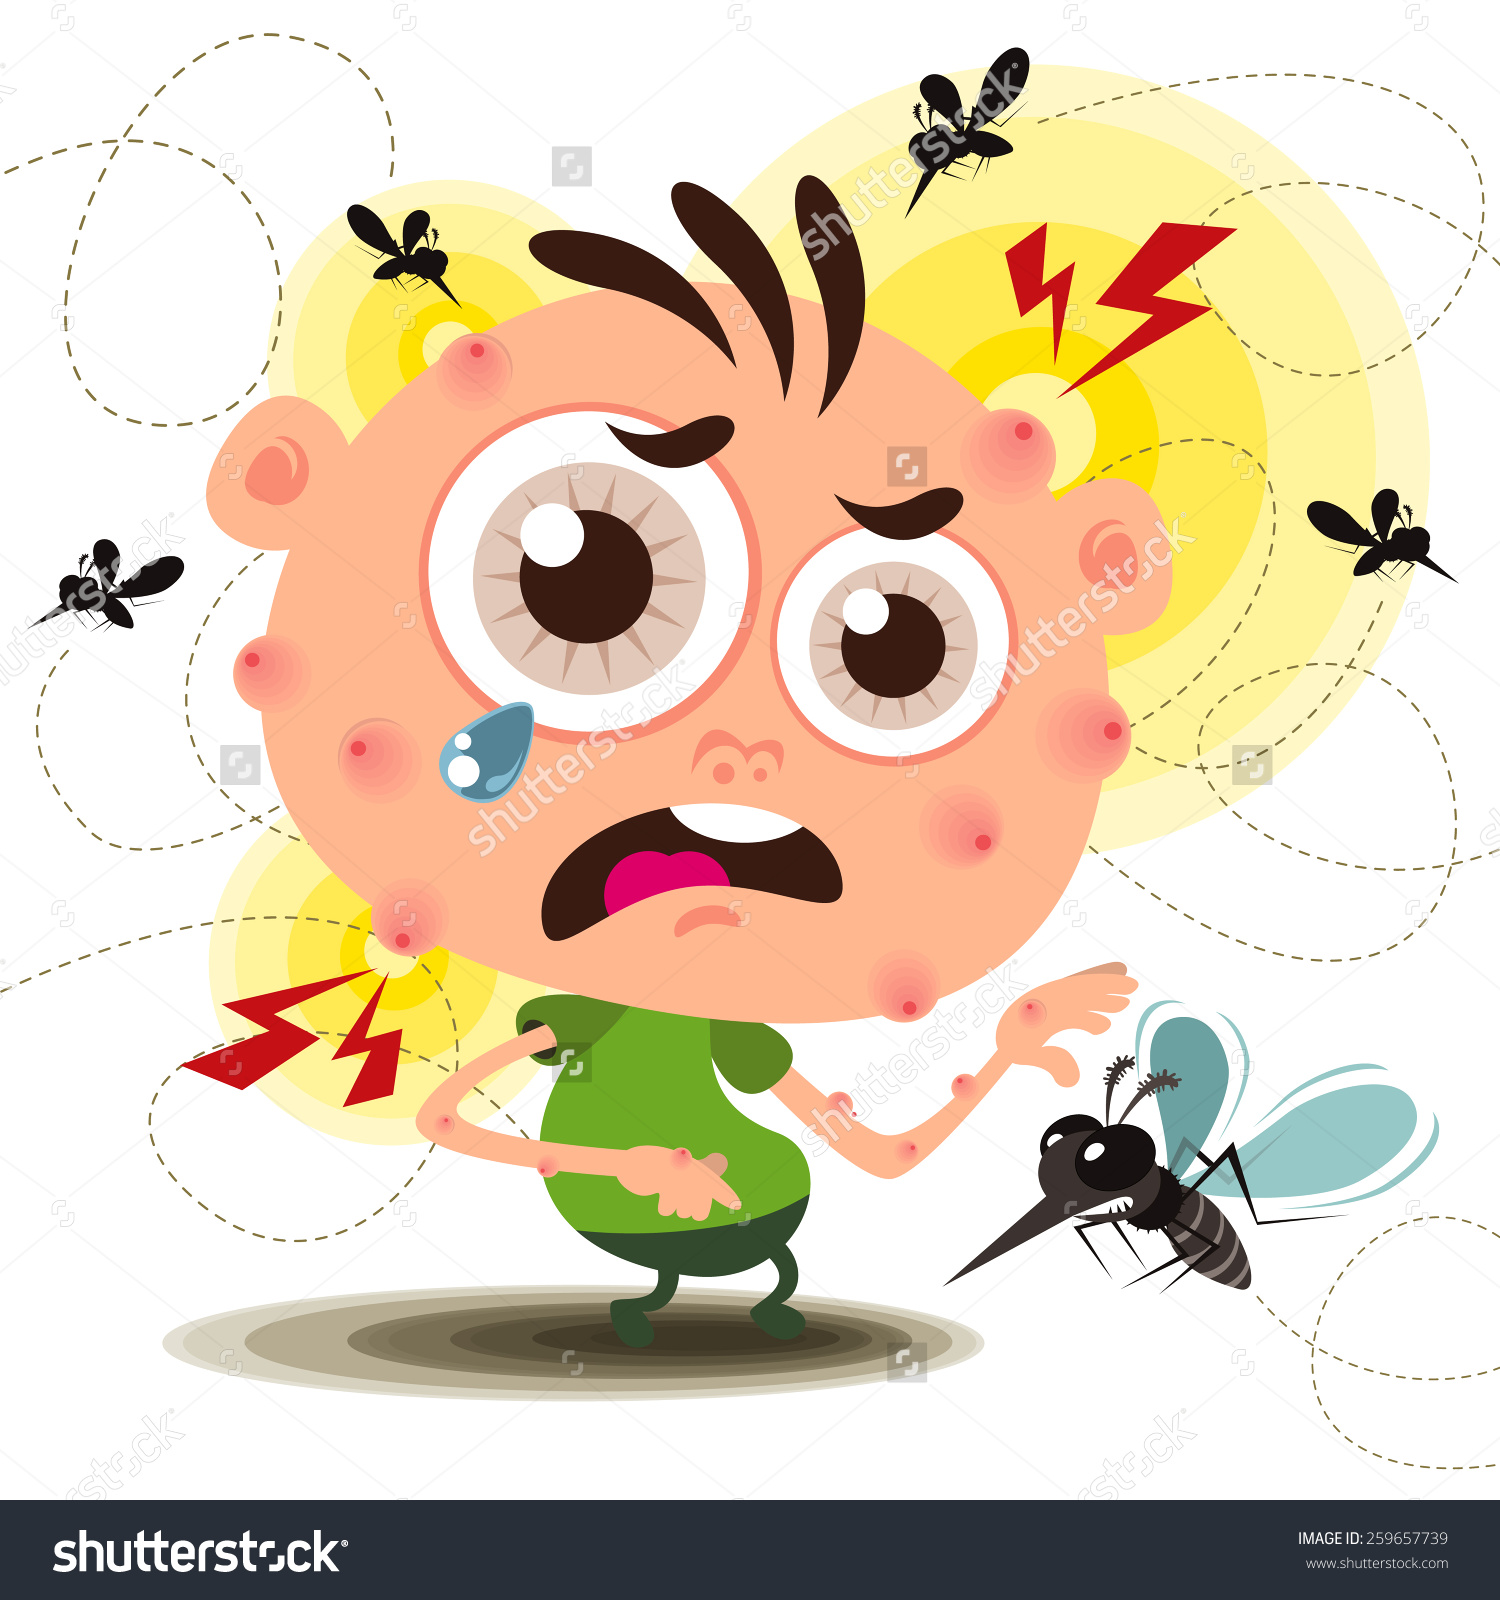 Insect bite clipart.